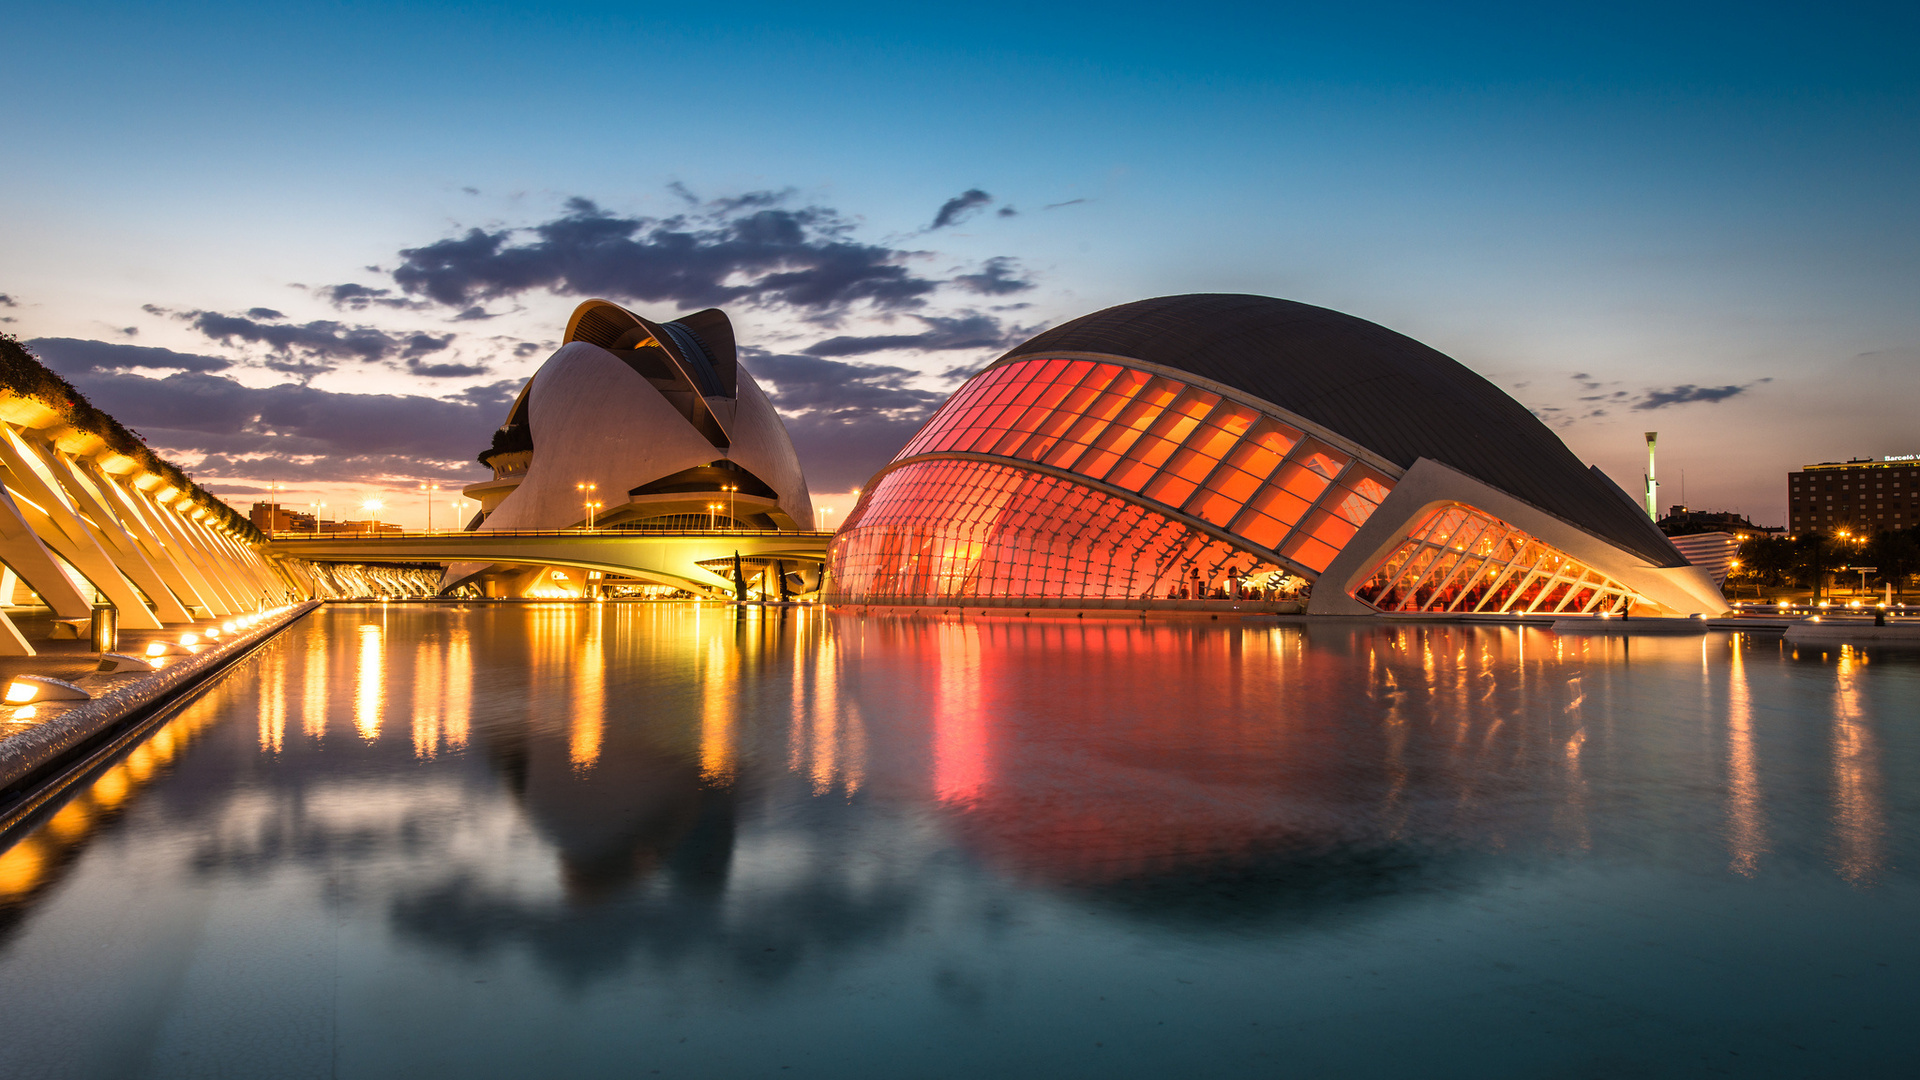 Spain Desktop Wallpaper - HD Wallpapers Backgrounds of Your Choice ...